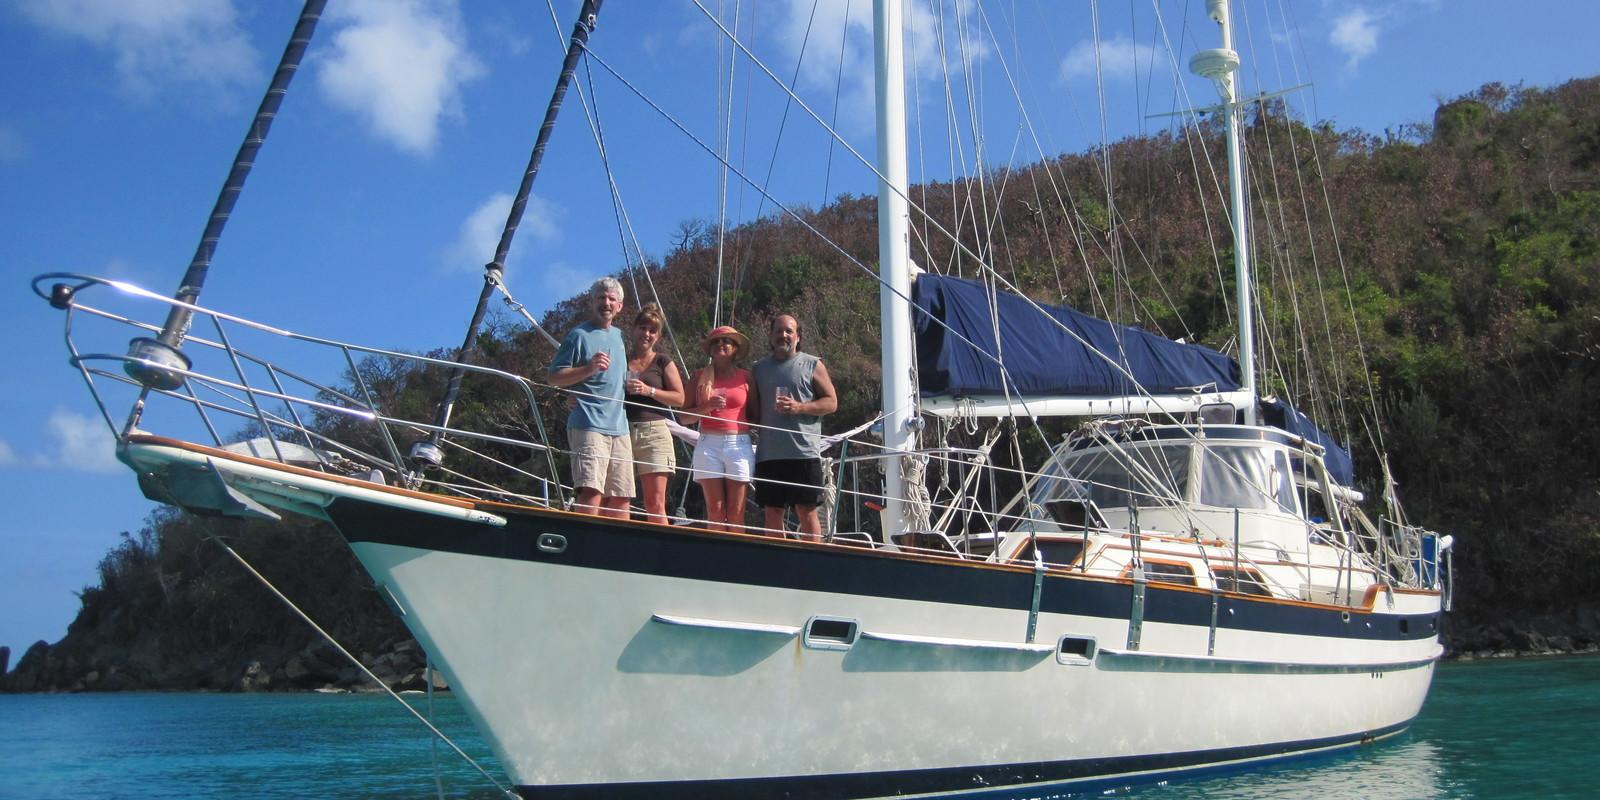 BVI Cruiser's Party 2019 - Food and Drink included.